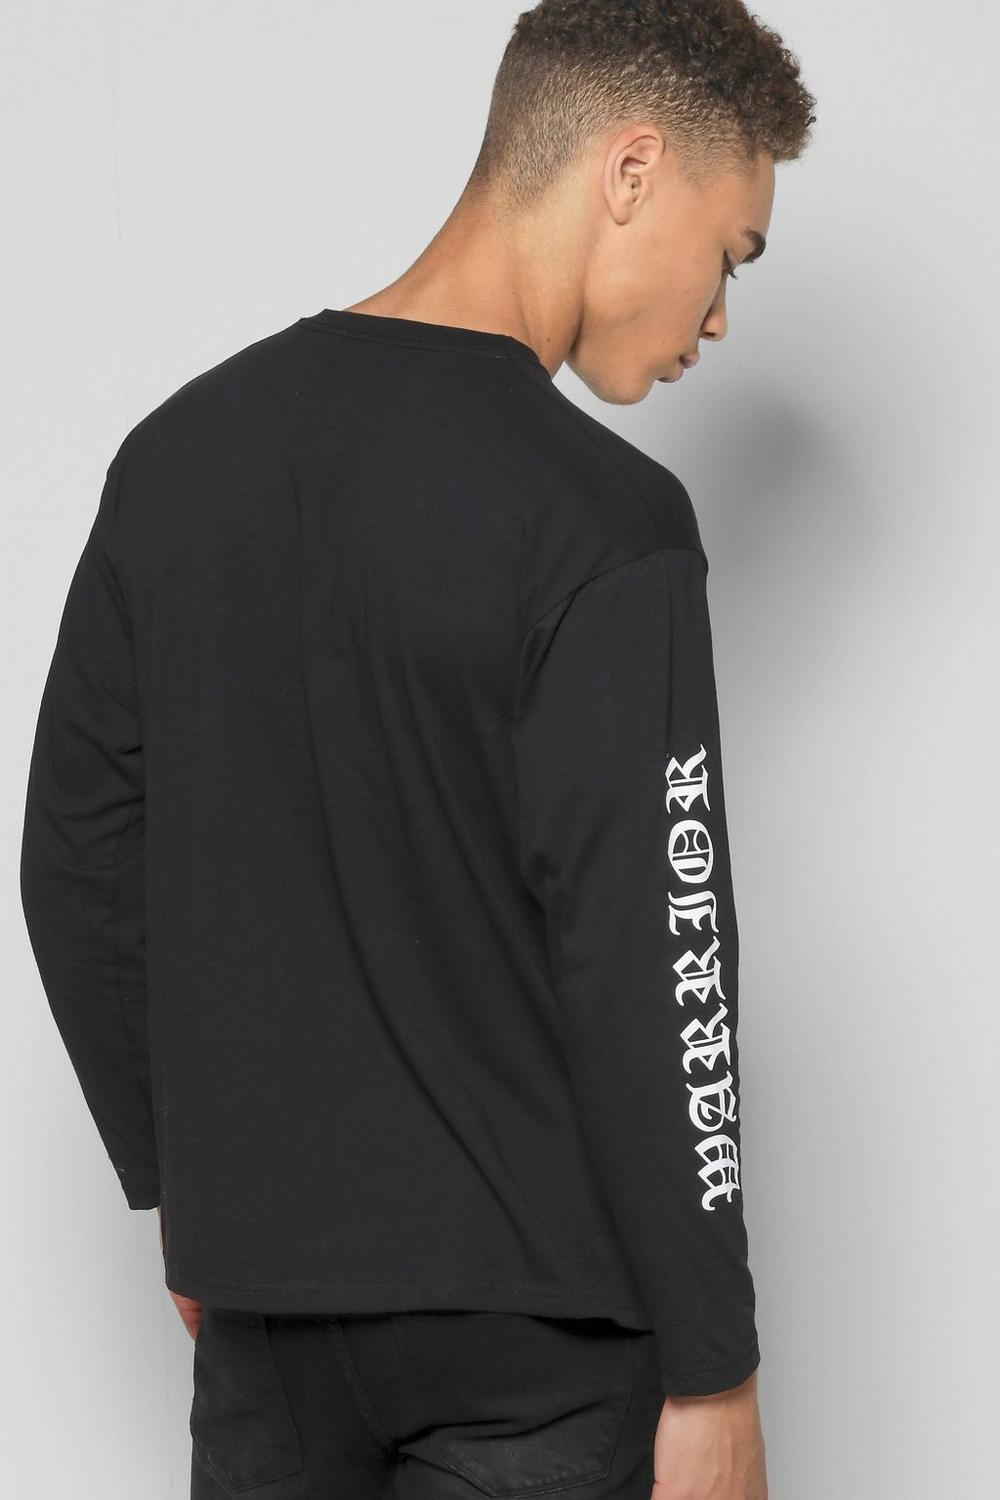 Long Sleeve T-Shirt With Sleeve Print